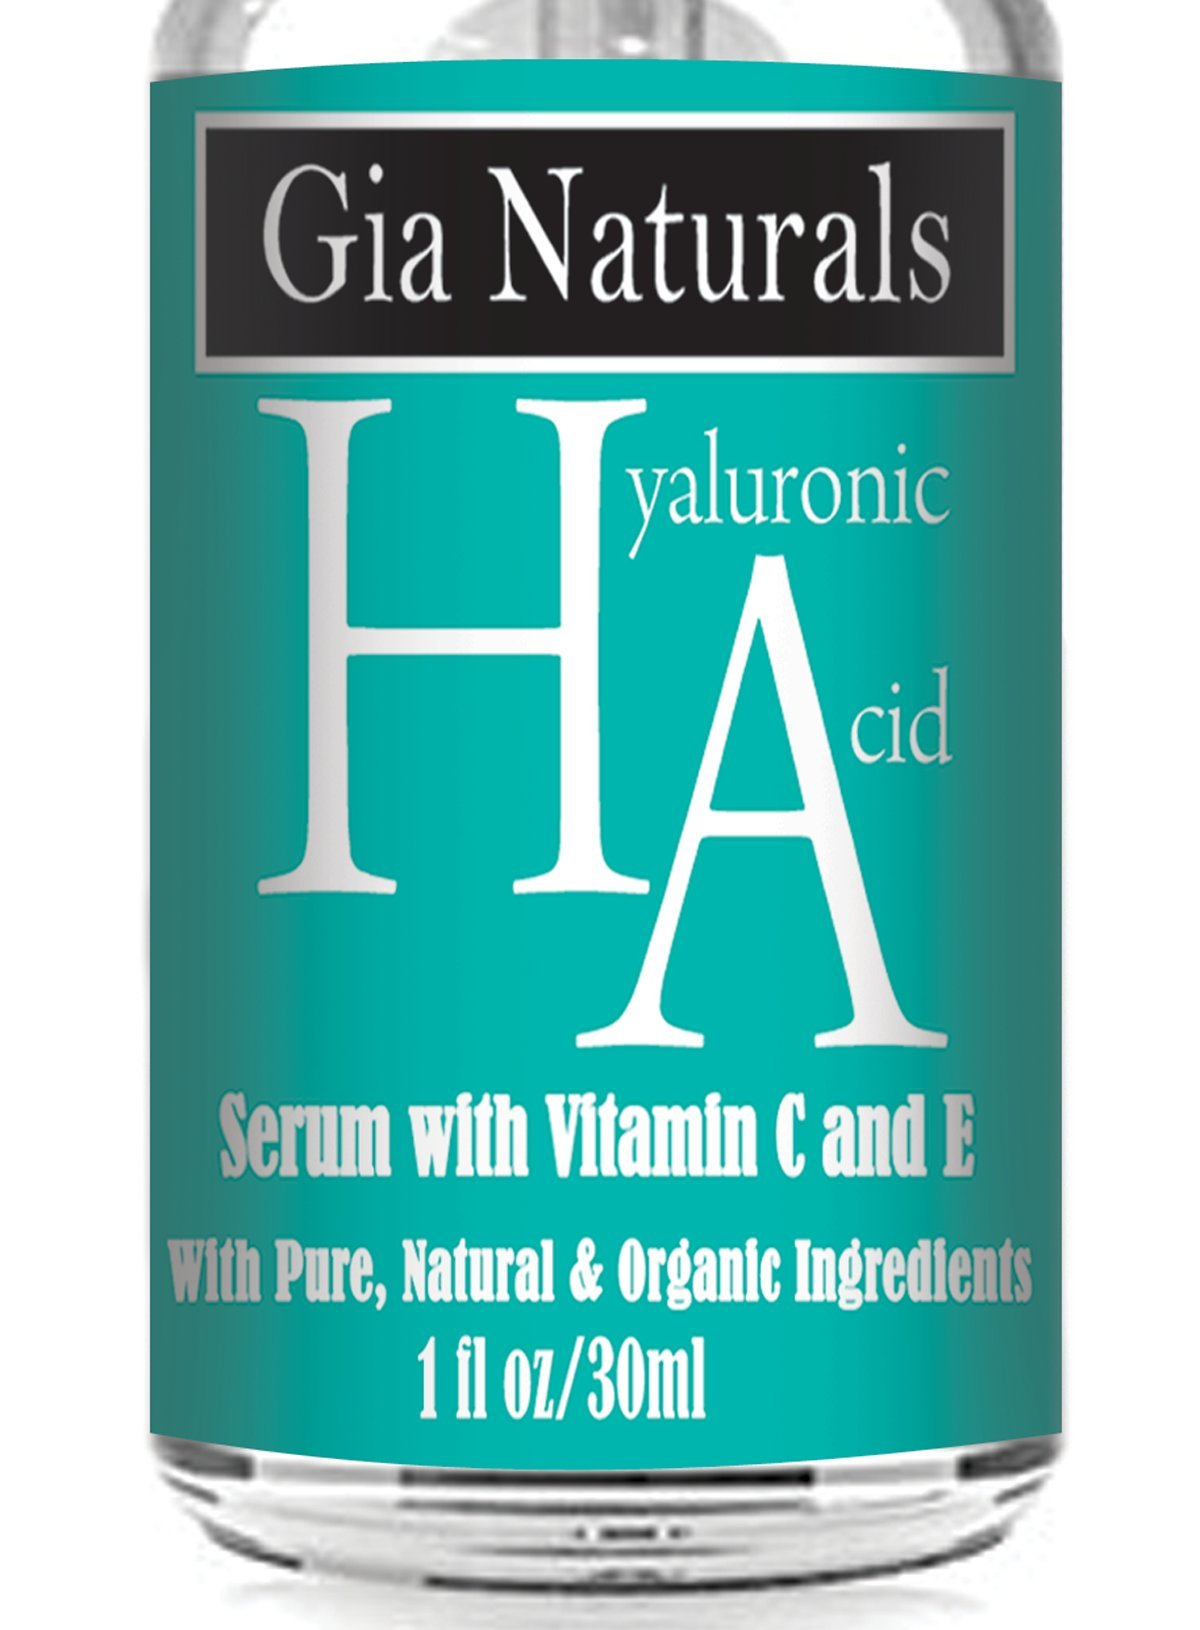 Pure, Natural, Organic (HA) Hyaluronic Acid Serum Cream. Superior Plant Sourced. Plus Vitamin C and E. Anti-Aging, Boosts Collagen, Reduces Wrinkles